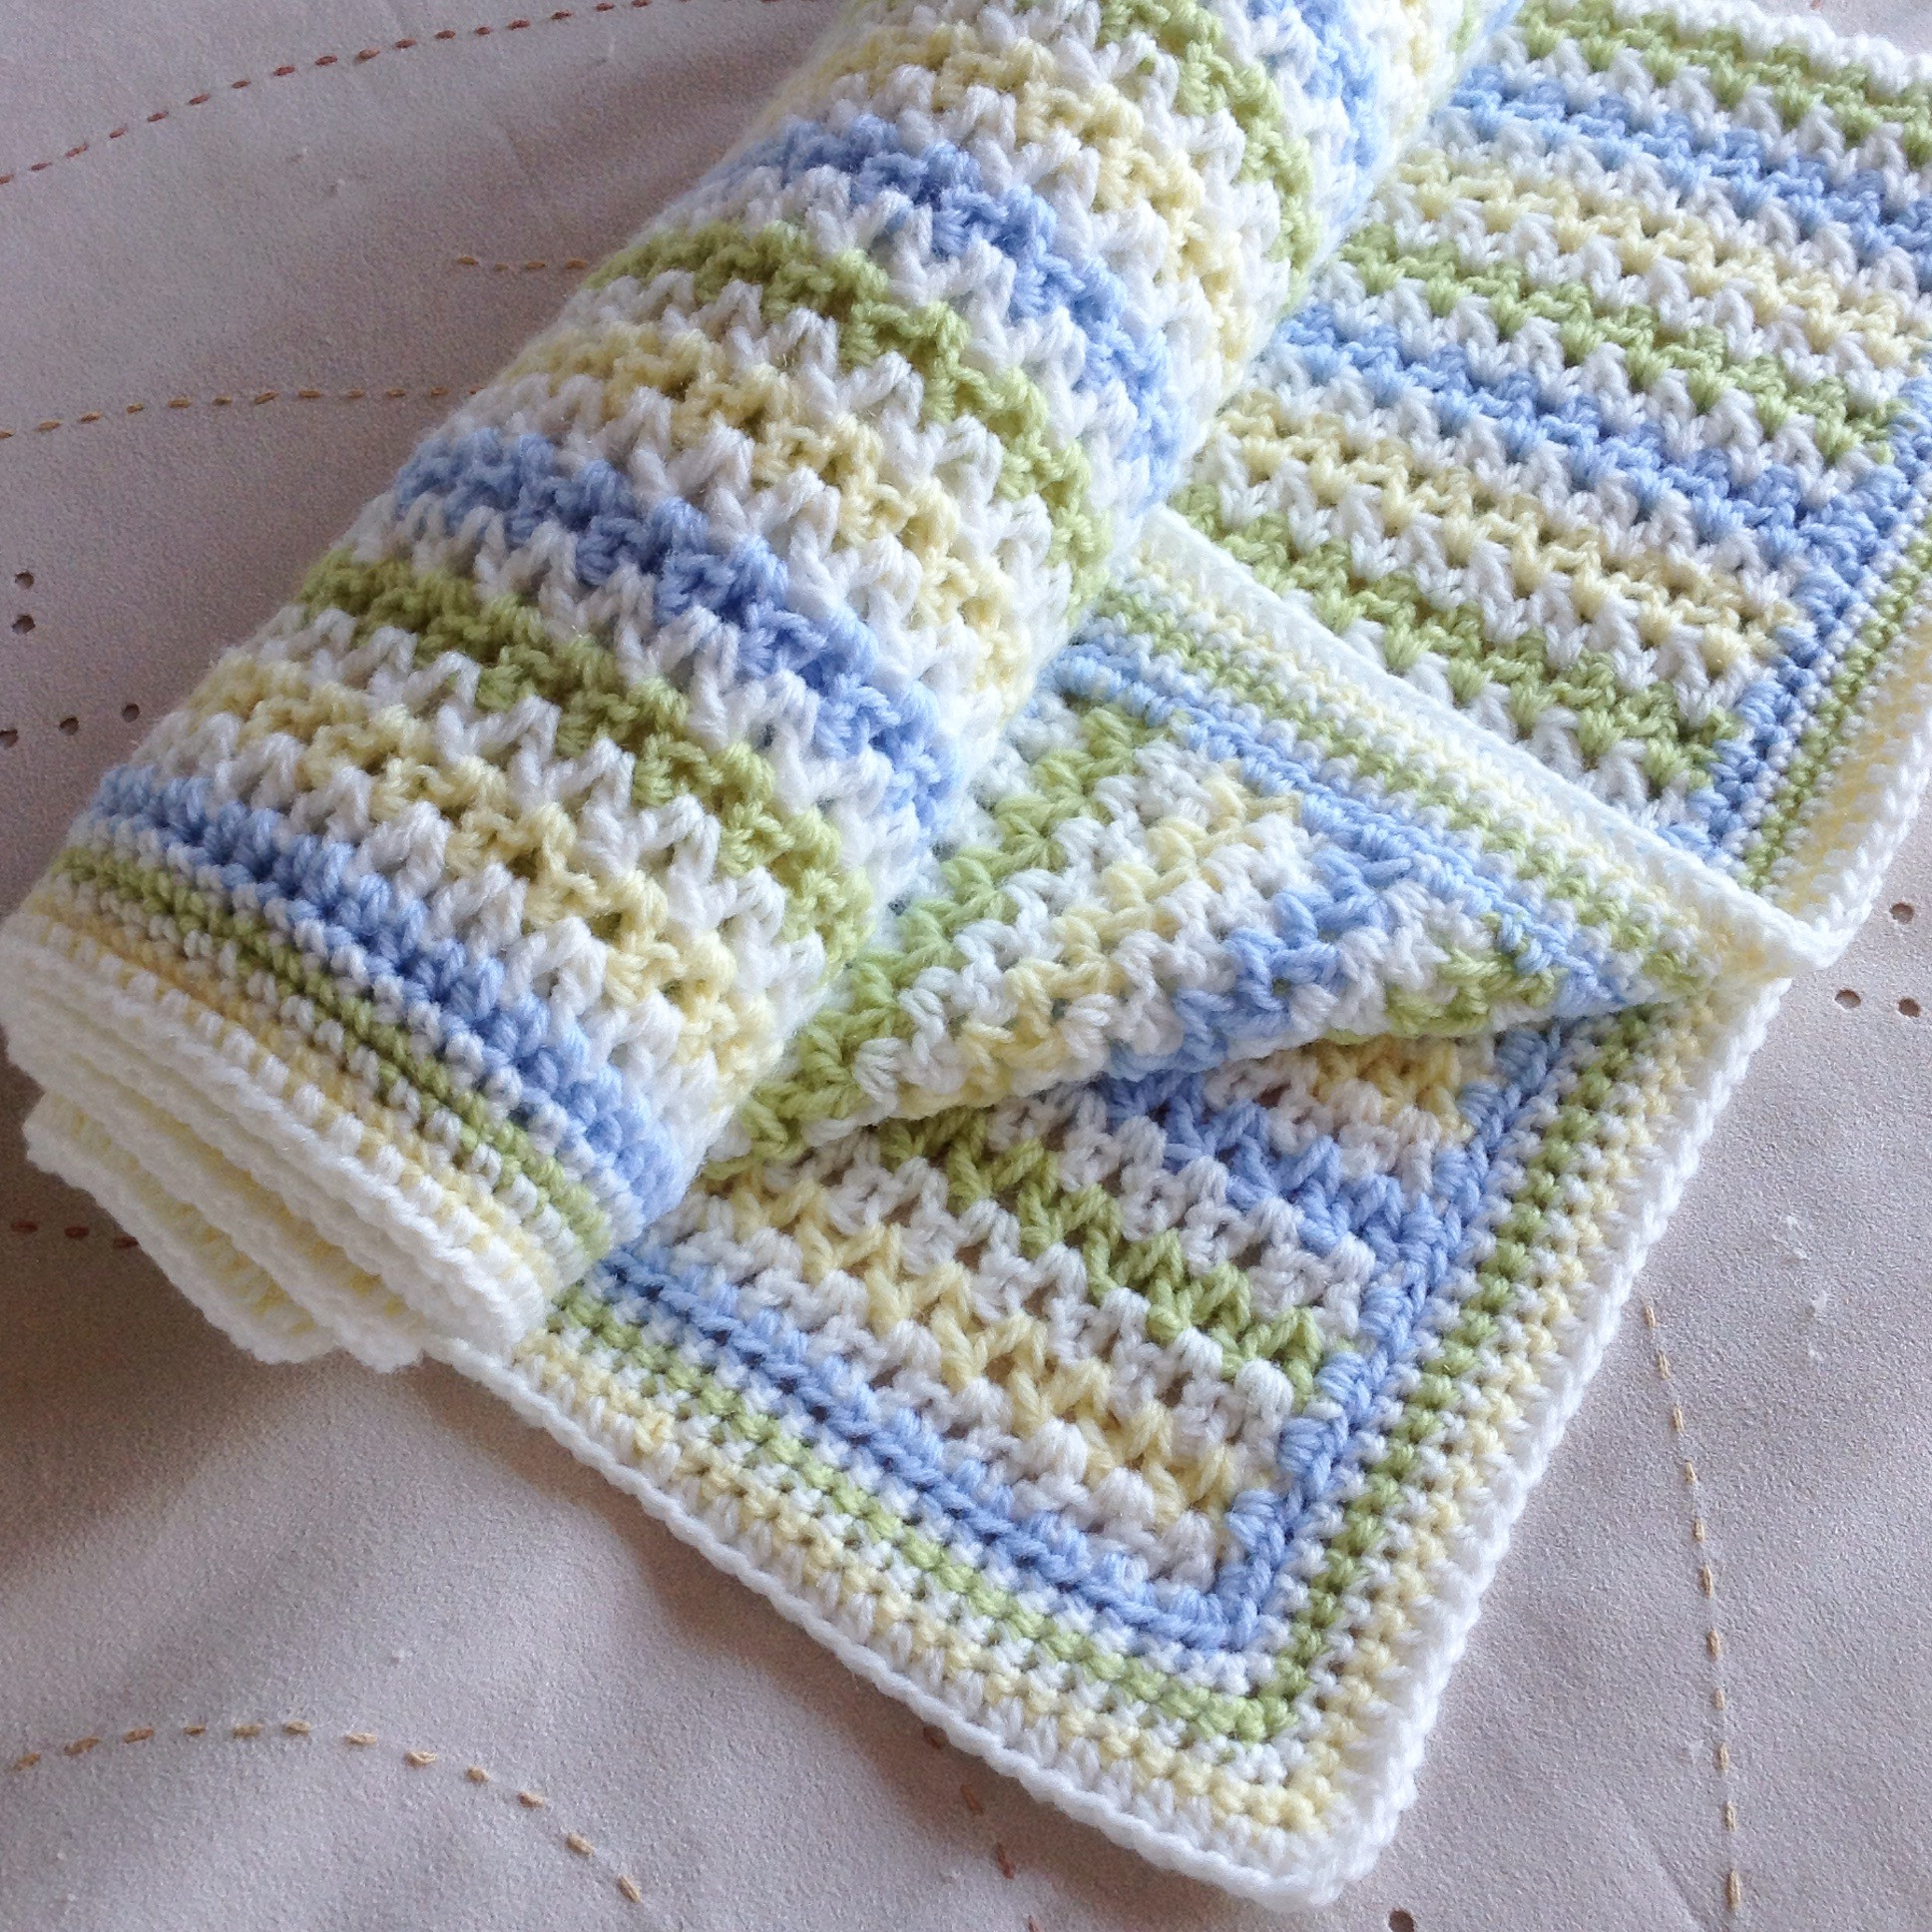 Crochet Thread Patterns Beautiful Spring Field Blanket Free Pattern Yarn Giveaway – Update Of Superb 47 Pics Crochet Thread Patterns